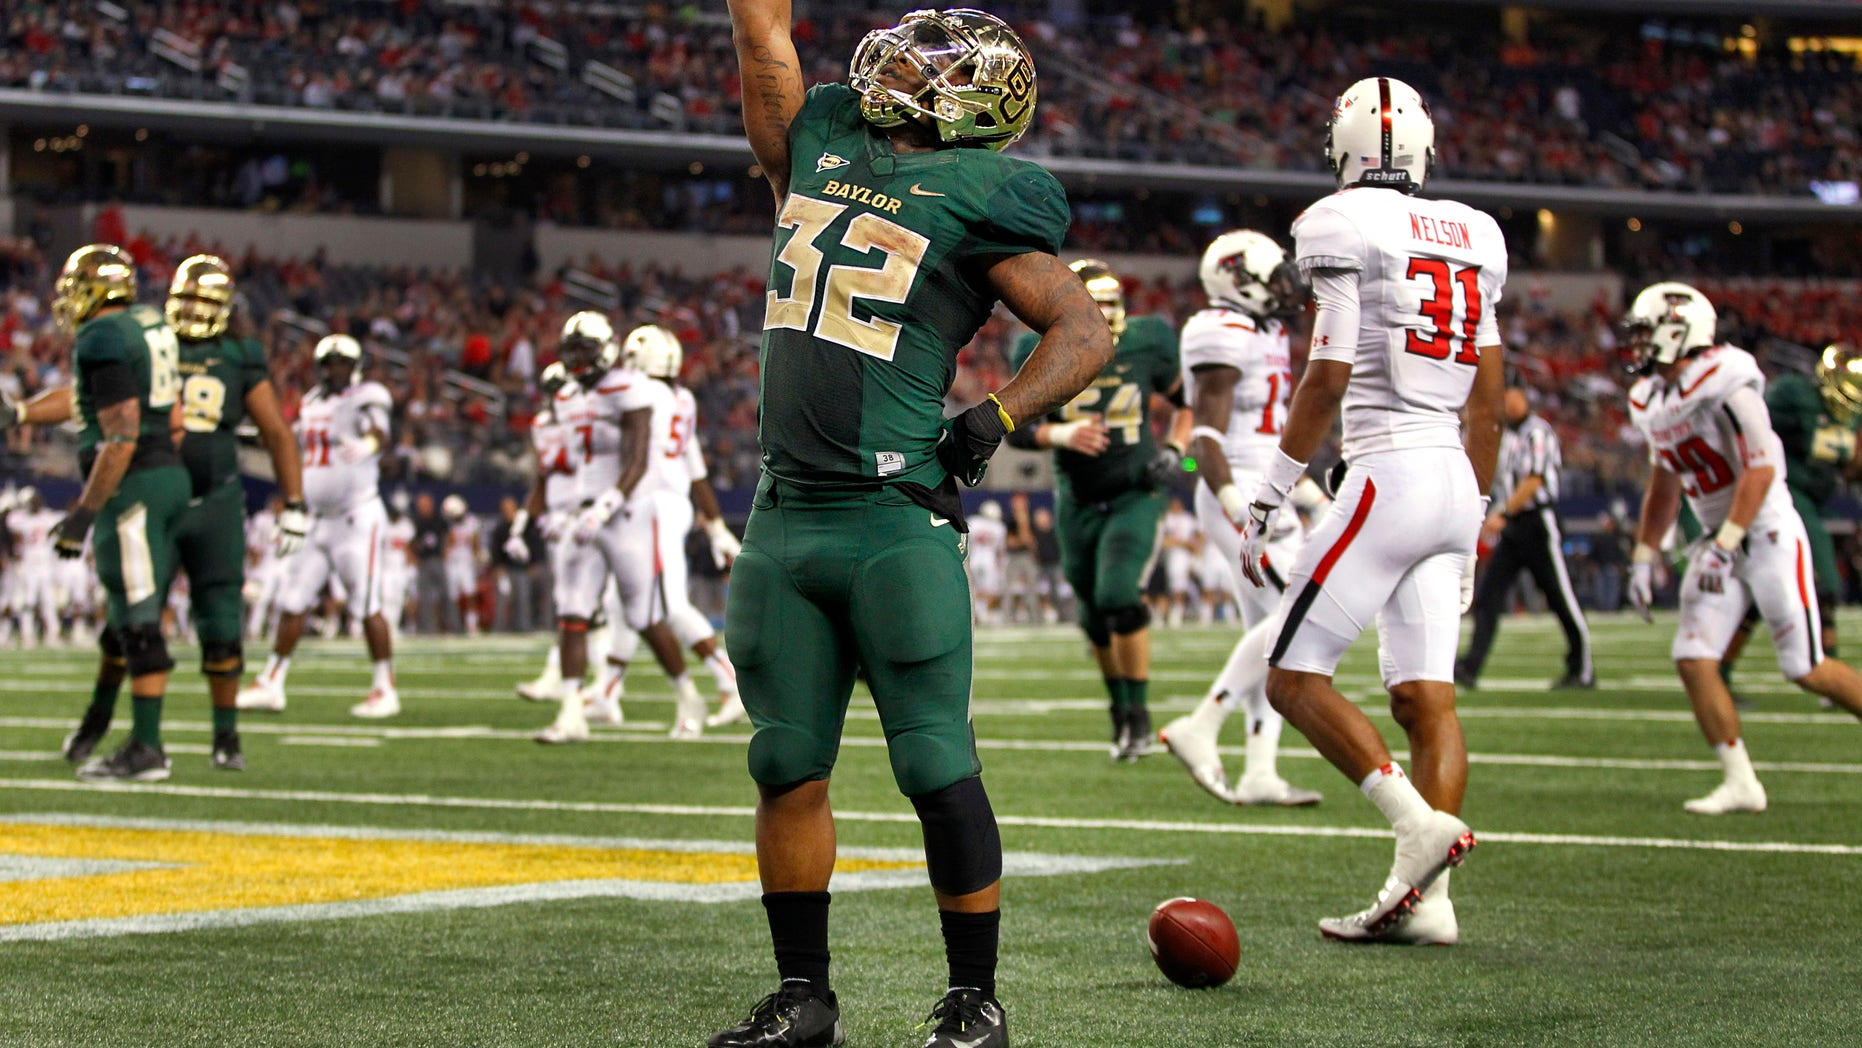 Baylor Bears running back Shock Linwood (32) points skyward after running in a fourth quarter touchdown against the Texas Tech Red Raiders defense at AT&T Stadium in Arlington, TX Saturday, Nov. 16, 2013. (AP Photo/Louis DeLuca/Dallas Morning News)